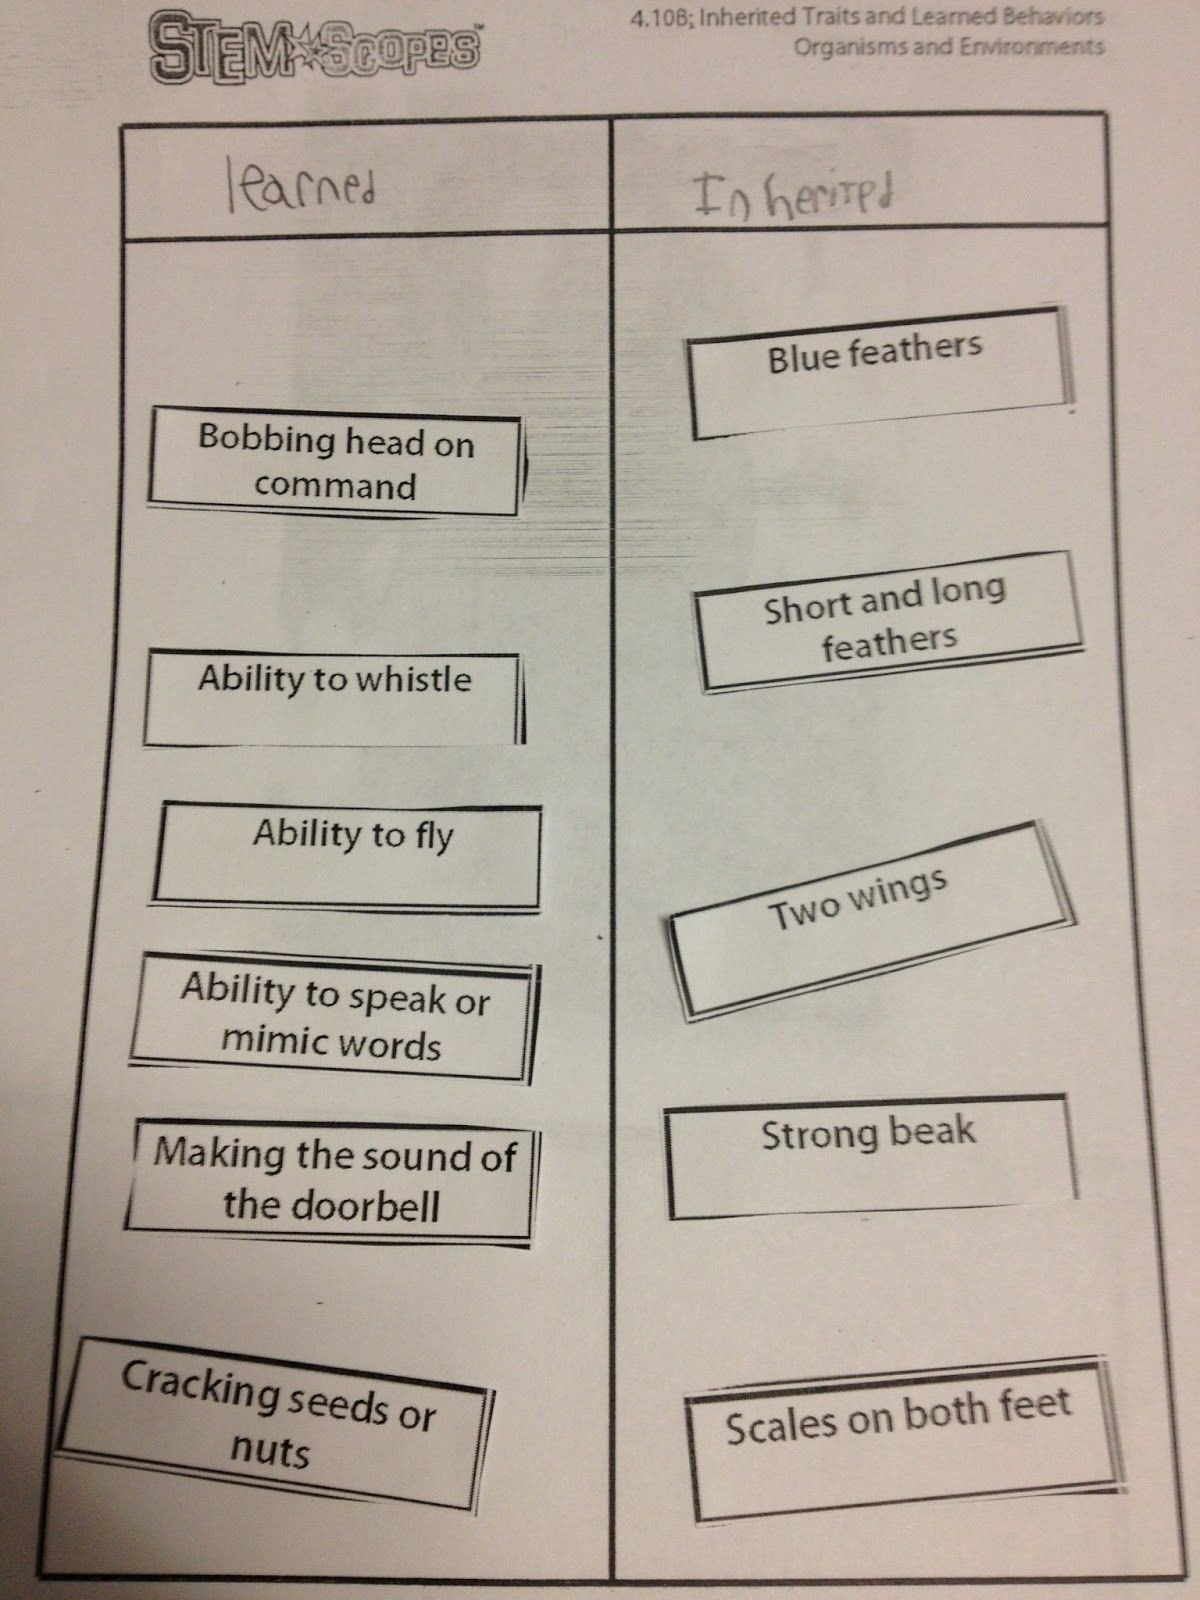 Inherited Traits Worksheet the 4th Grade May Niacs Inherited Traits and Learned